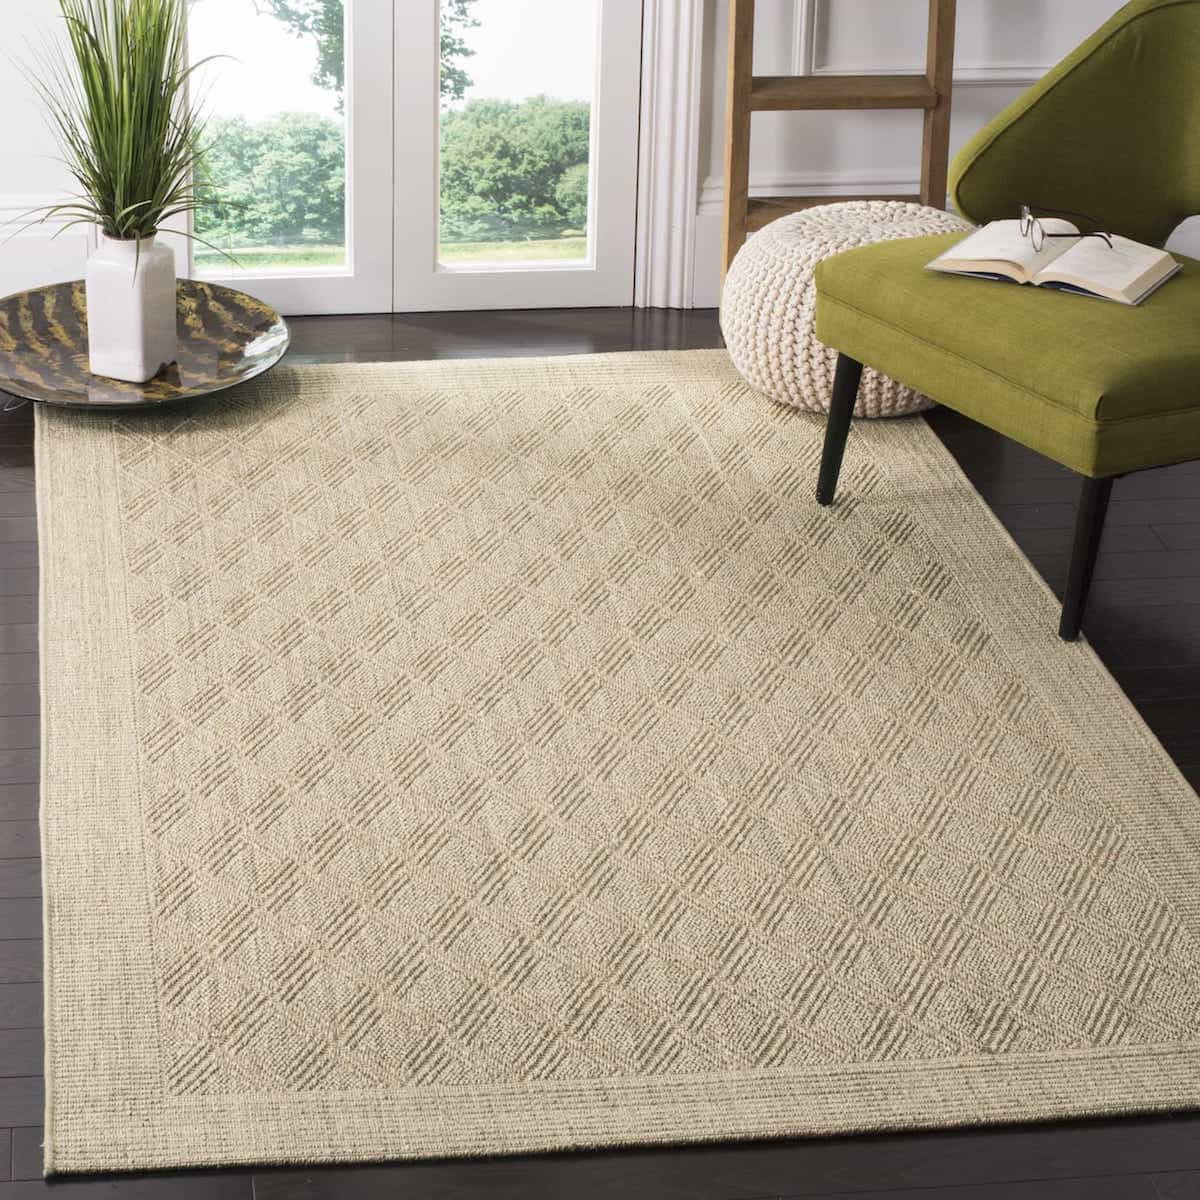 10 14 Neutral Brown Sisal Rug For Living Room Area Image 1 Of 15